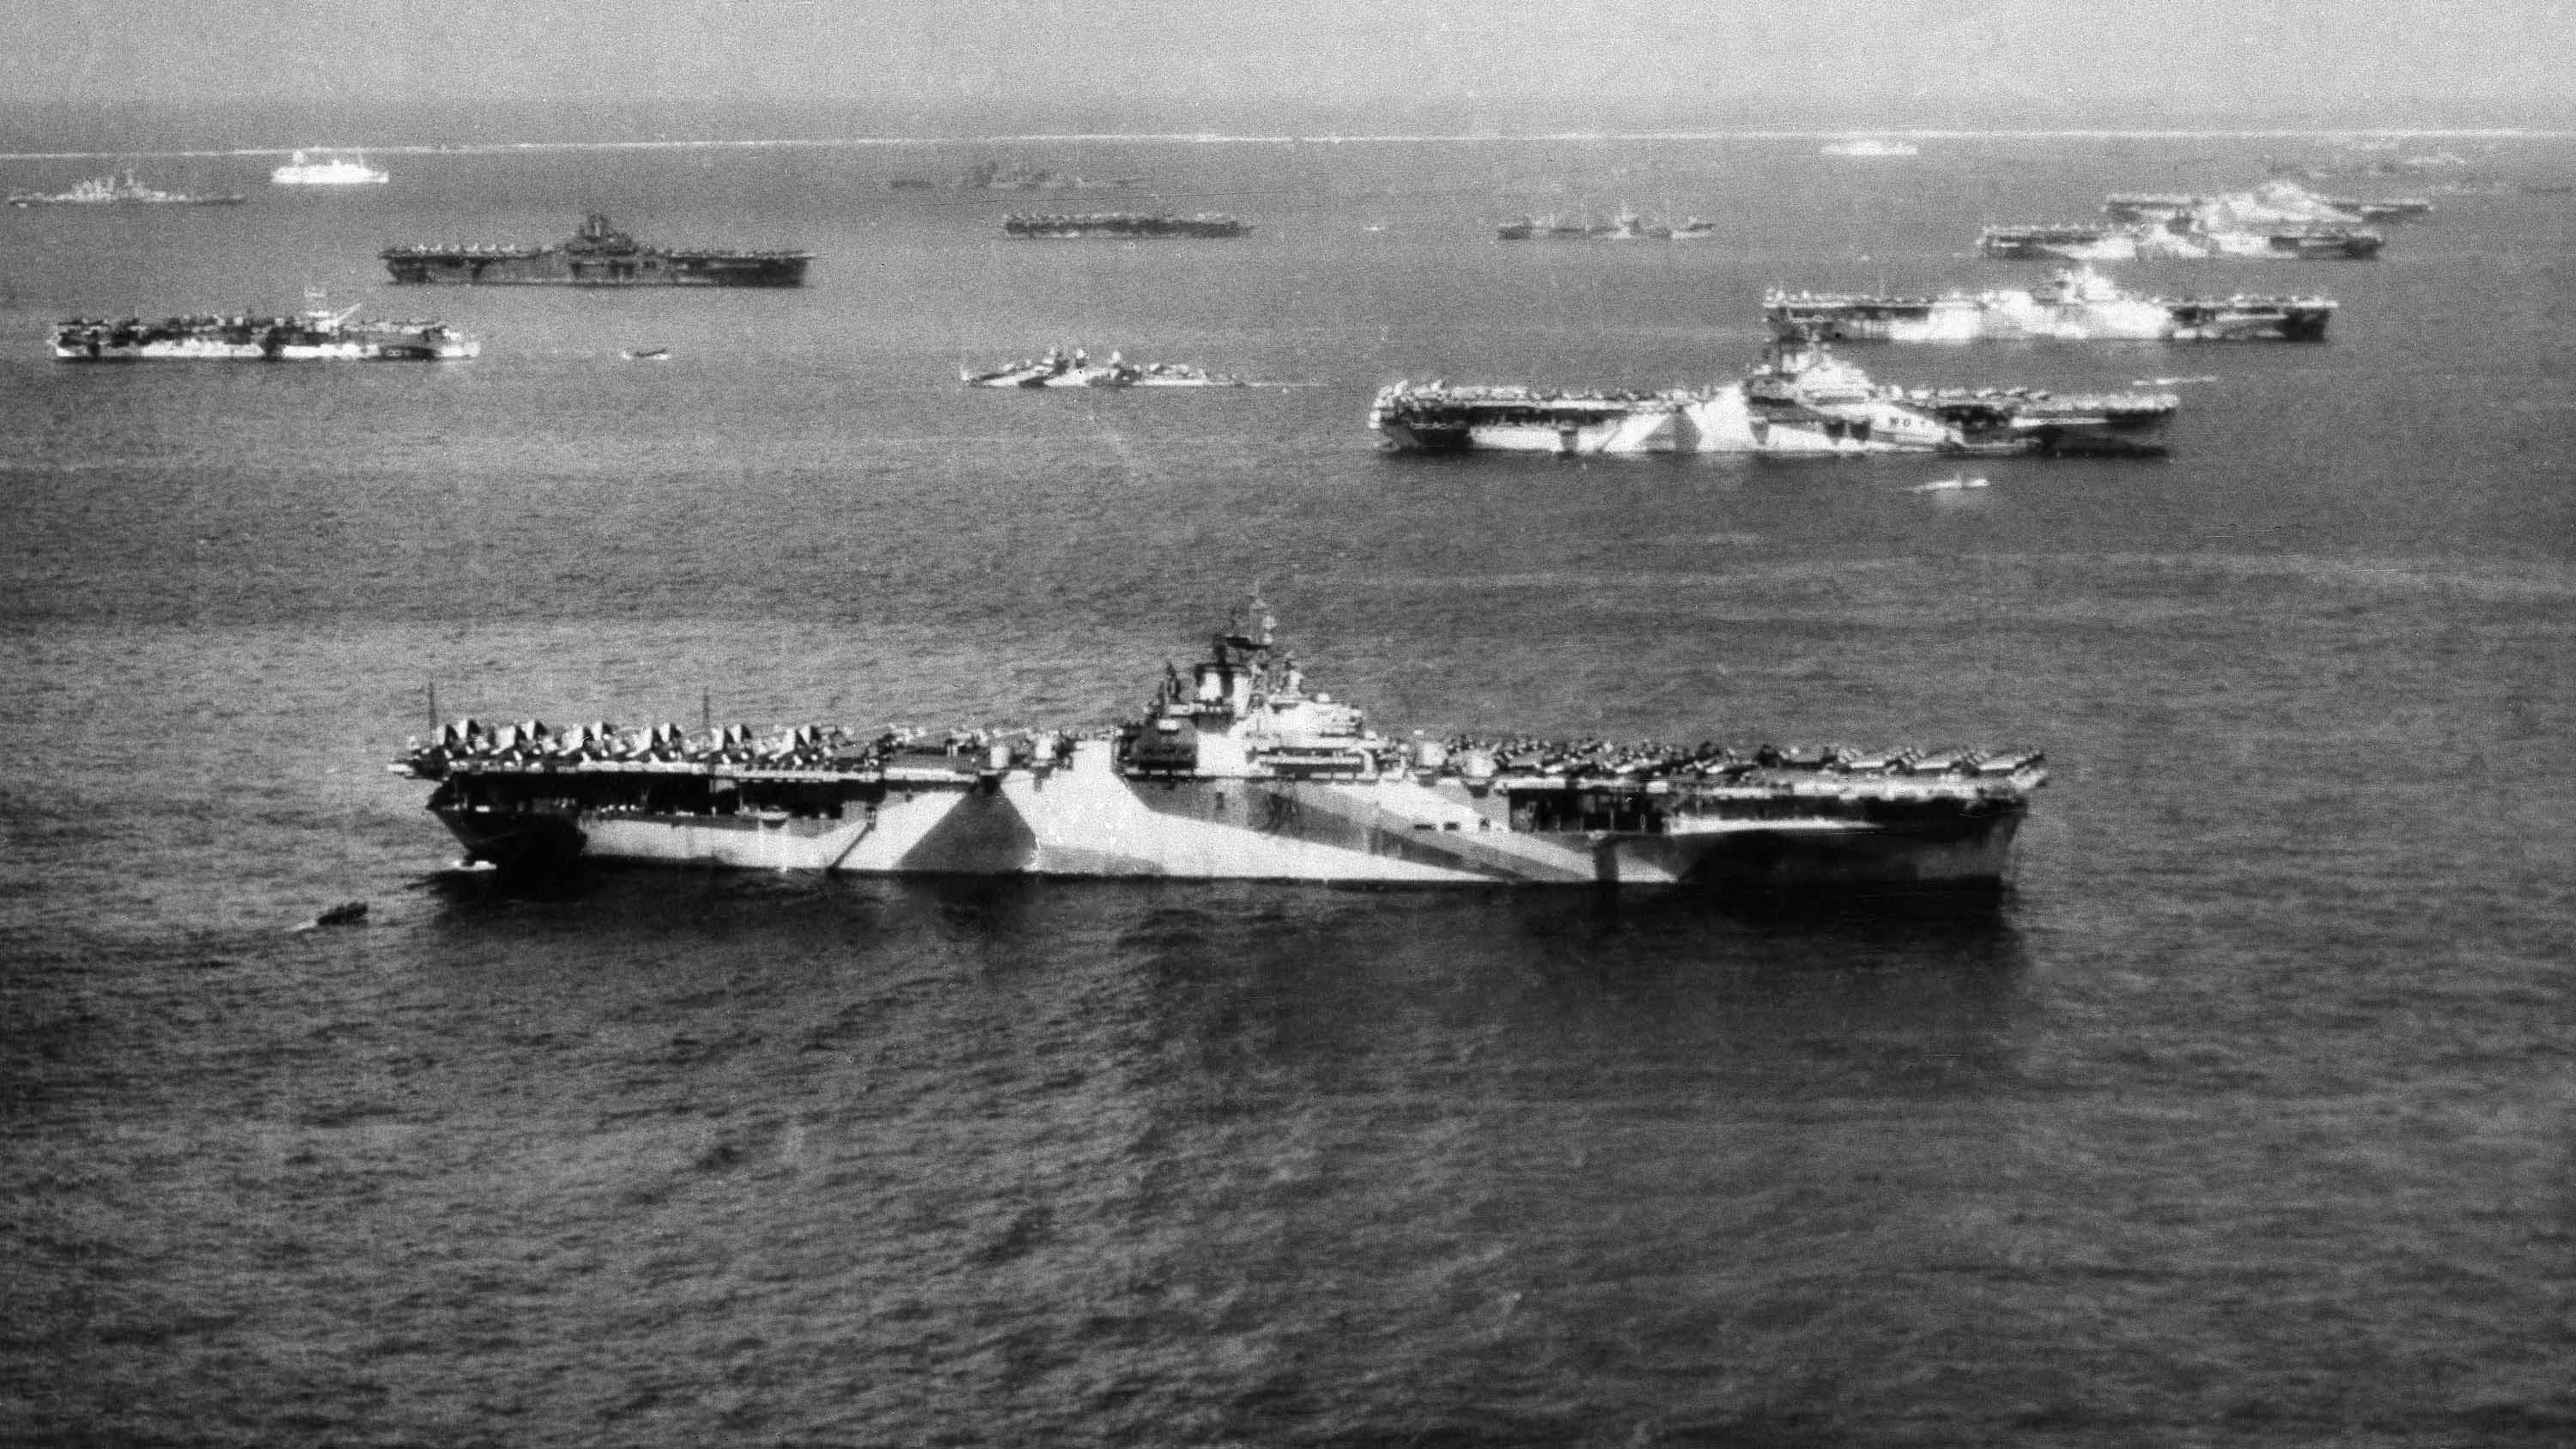 The remains of a World War II aircraft carrier, unseen for 75 years, have  been found - CNN